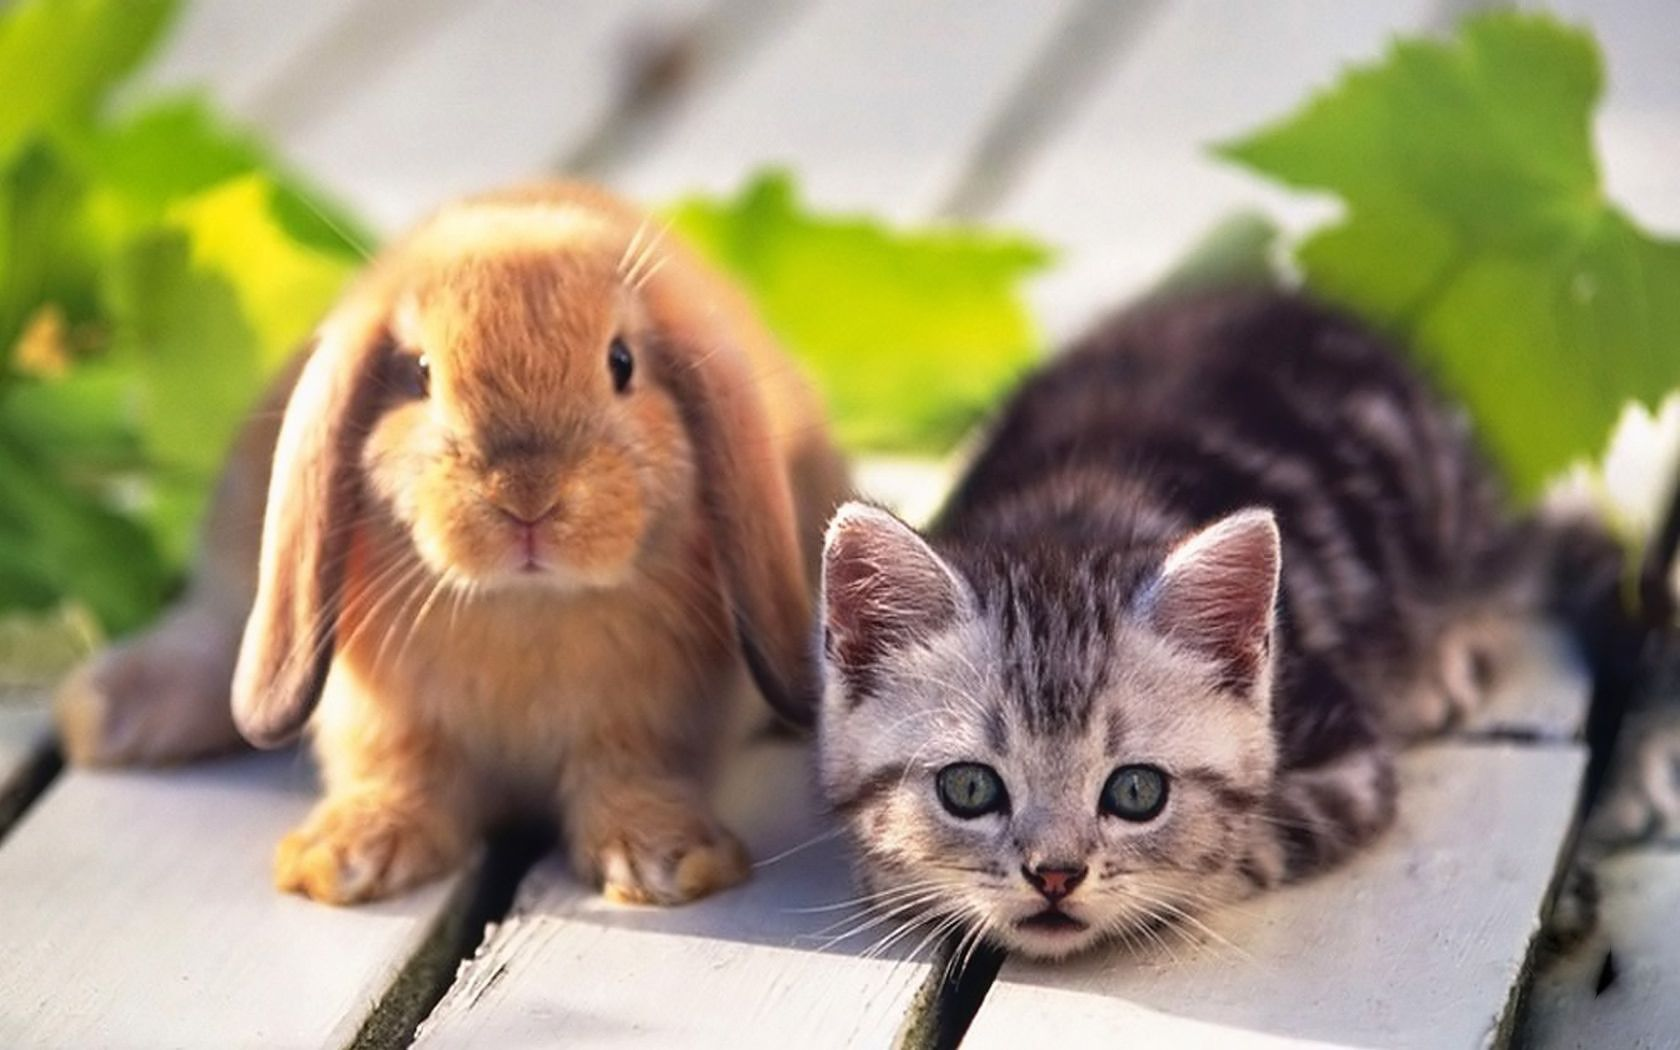 Enjoy this morning kitten Cute puppies and kittens Free Books